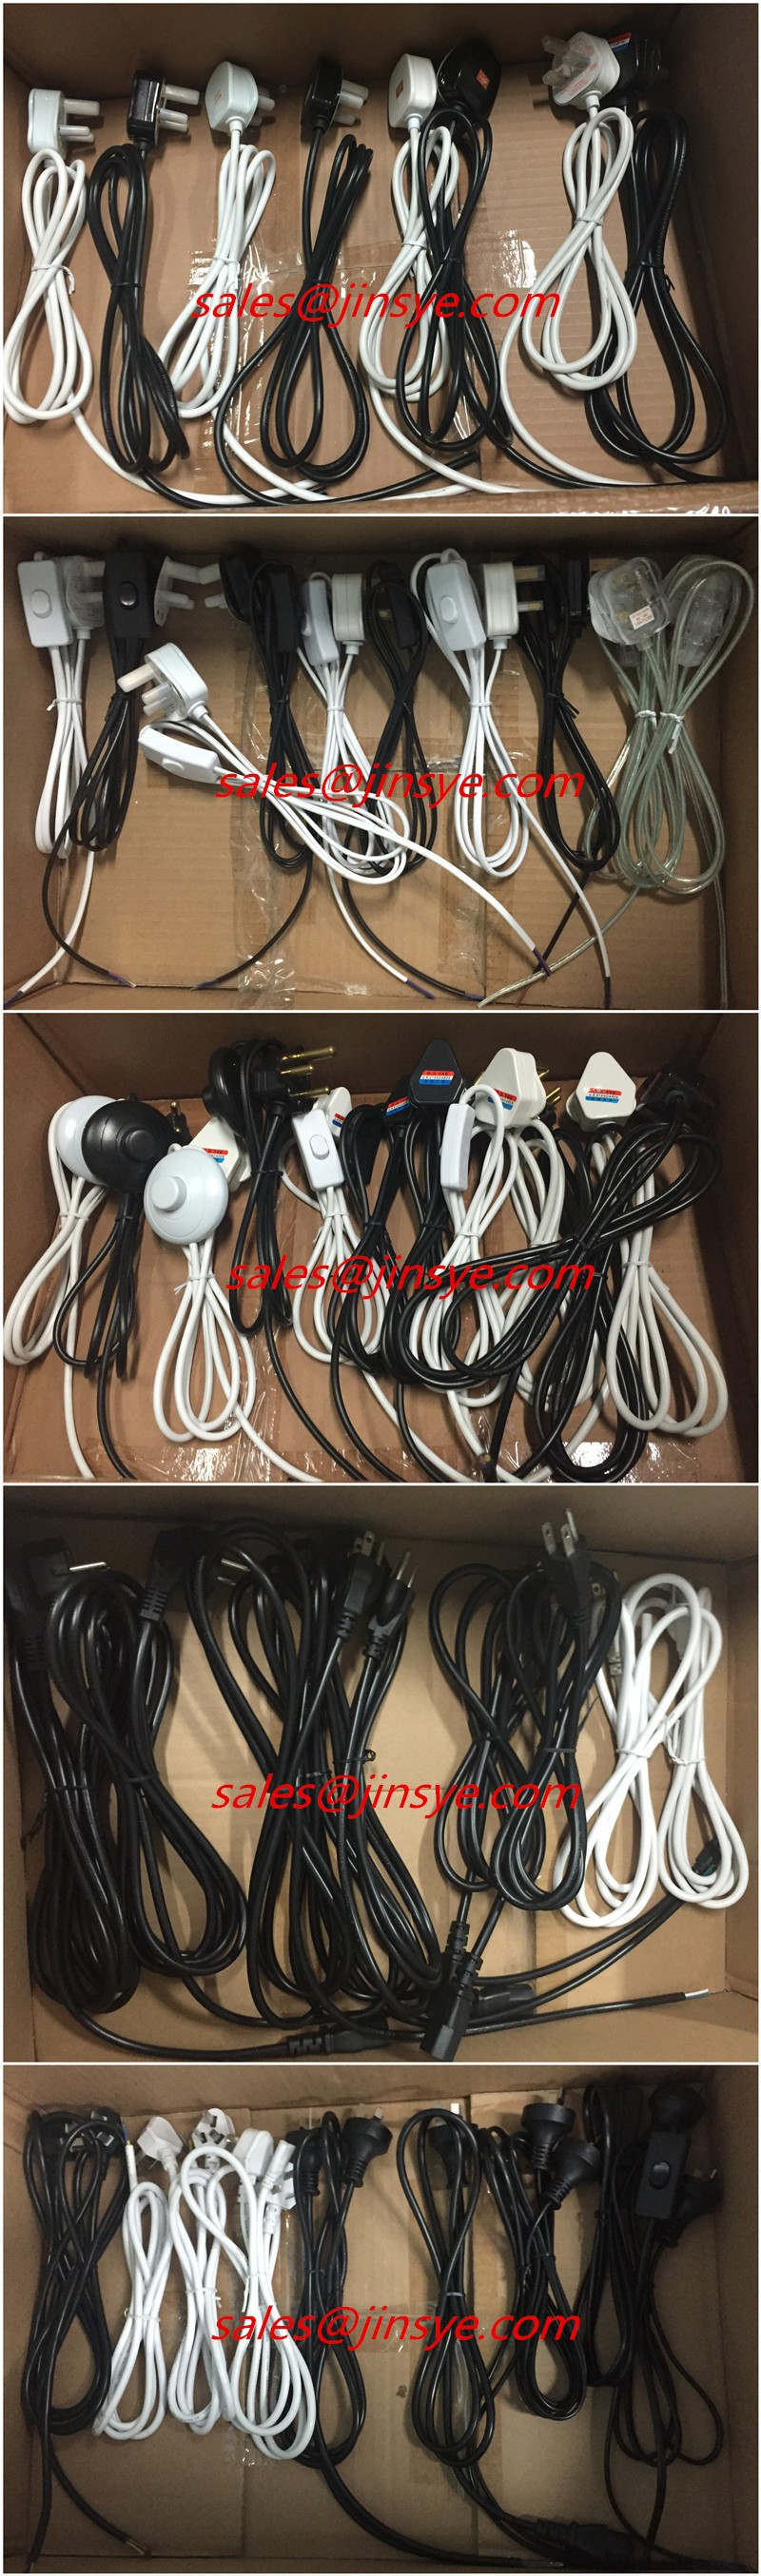 Wiring A Plug Colours South Africa